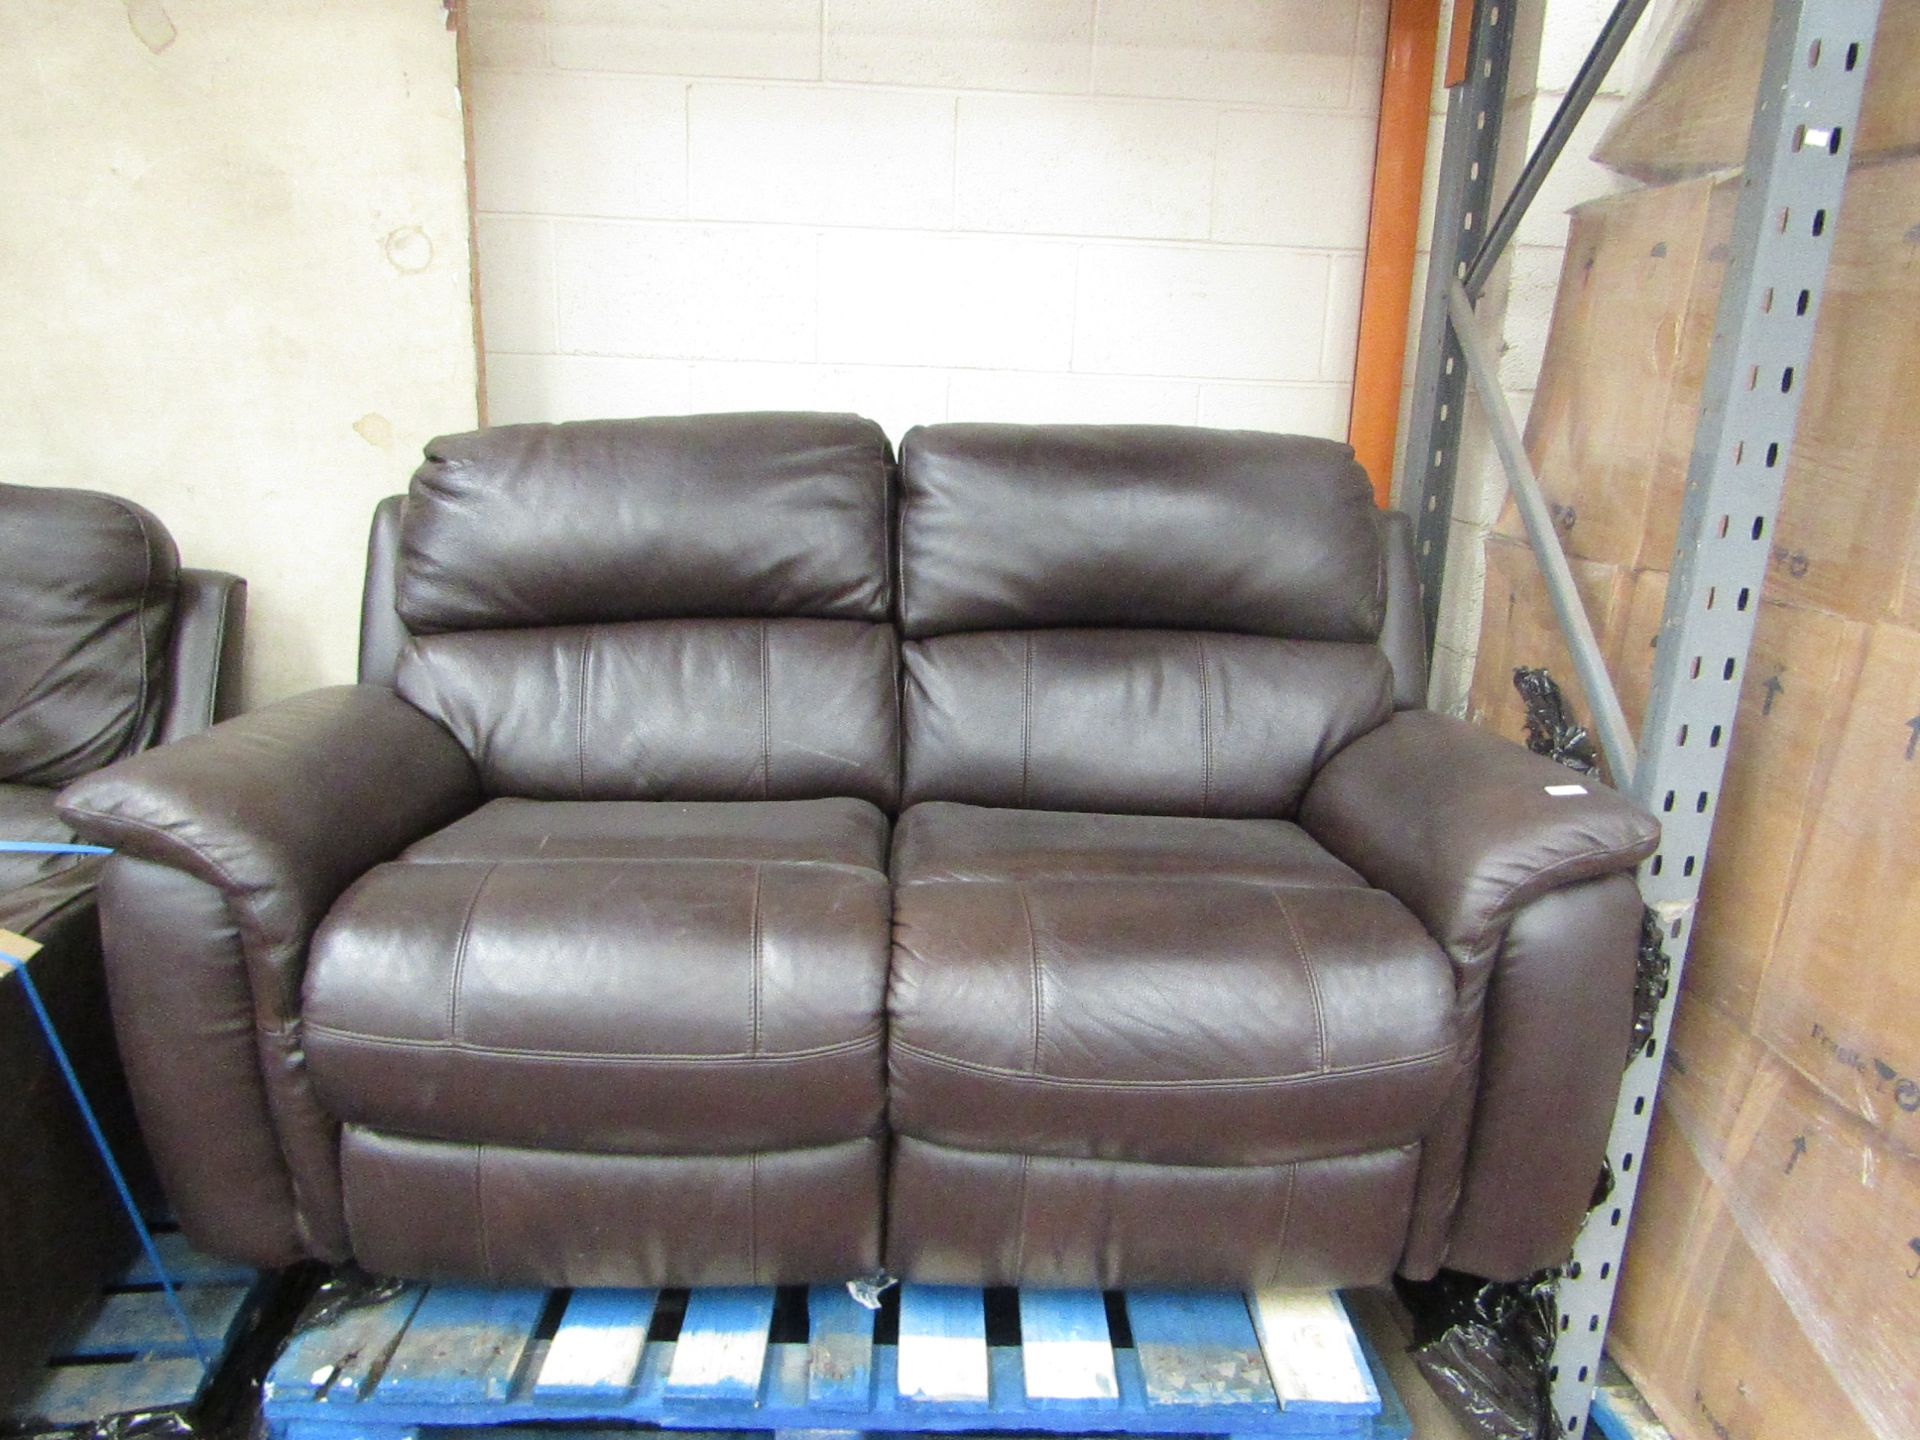 Lot 1 - 2 seater Leather manual reclining sofa, mechanism is tested working